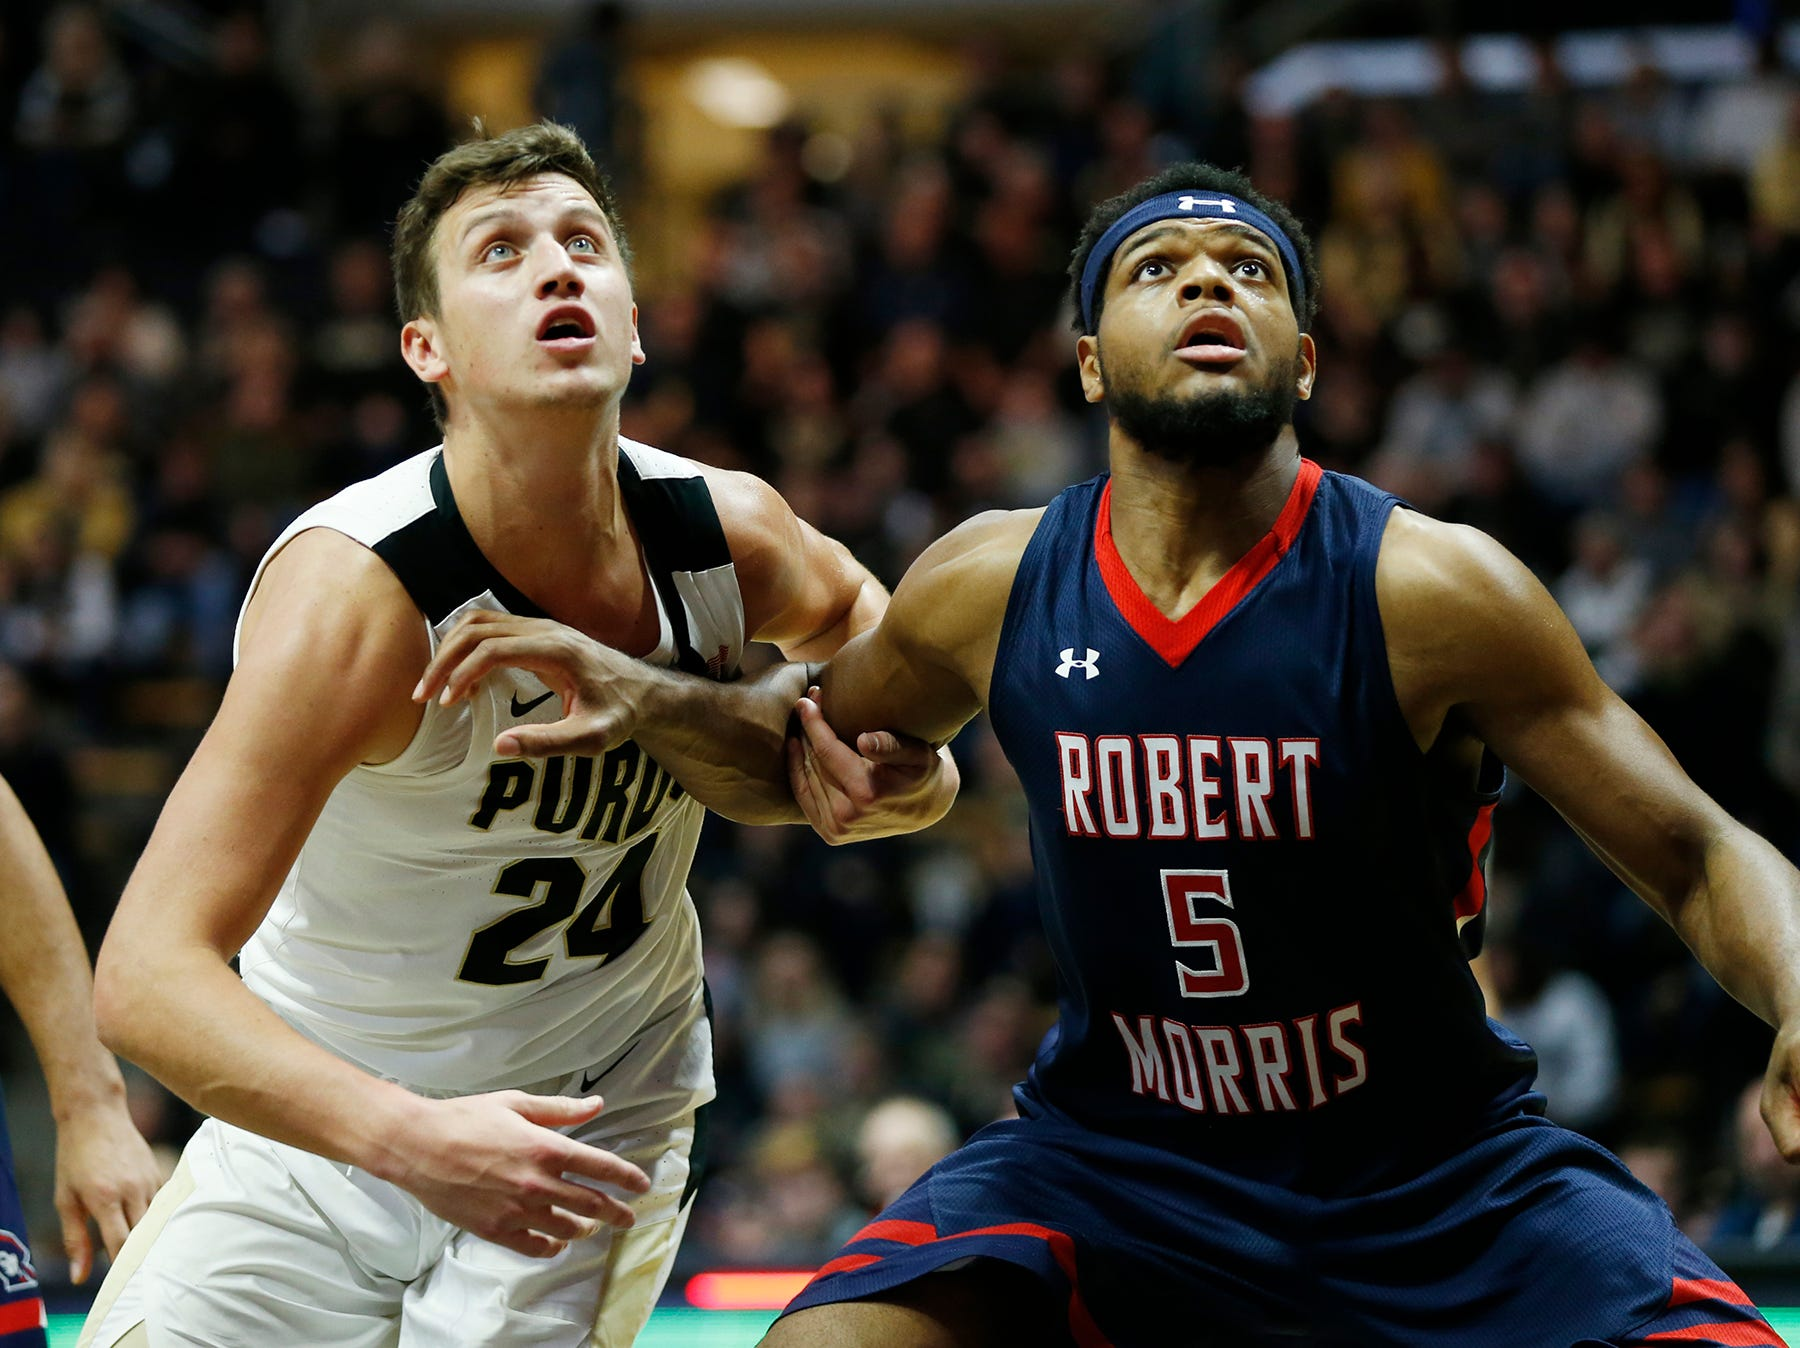 Grady Eifert of Purdue and Malik Petteway of Robert Morris work for position Friday, November 23, 2018, at Mackey Arena. Purdue defeated Robert Morris 84-46.